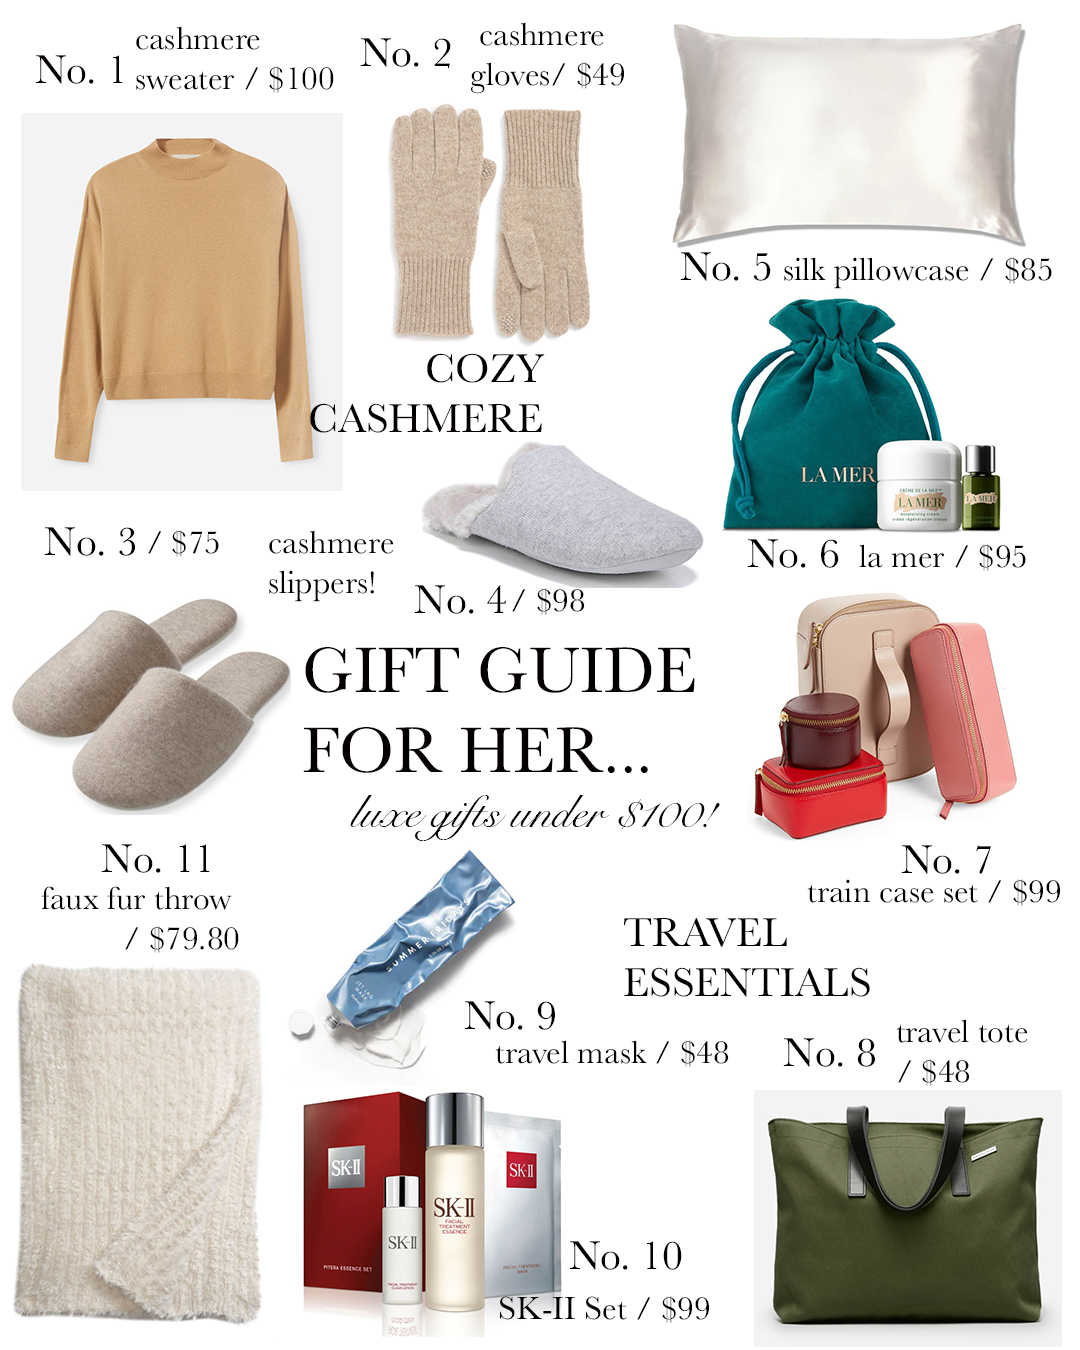 No. 1  Cashmere Sweater  / No. 2  Cashmere Gloves  / No. 3  Cashmere Slippers  / No. 4  Vince Cashmere Slippers  / No. 5  Silk Pillowcase  / No. 6  La Mer  / No. 7  Train Case Set  / No. 8  Travel Tote  / No. 9  Jet Lag Mask  / No. 10  SK-II Set  / No. 11  Faux Fur Throw